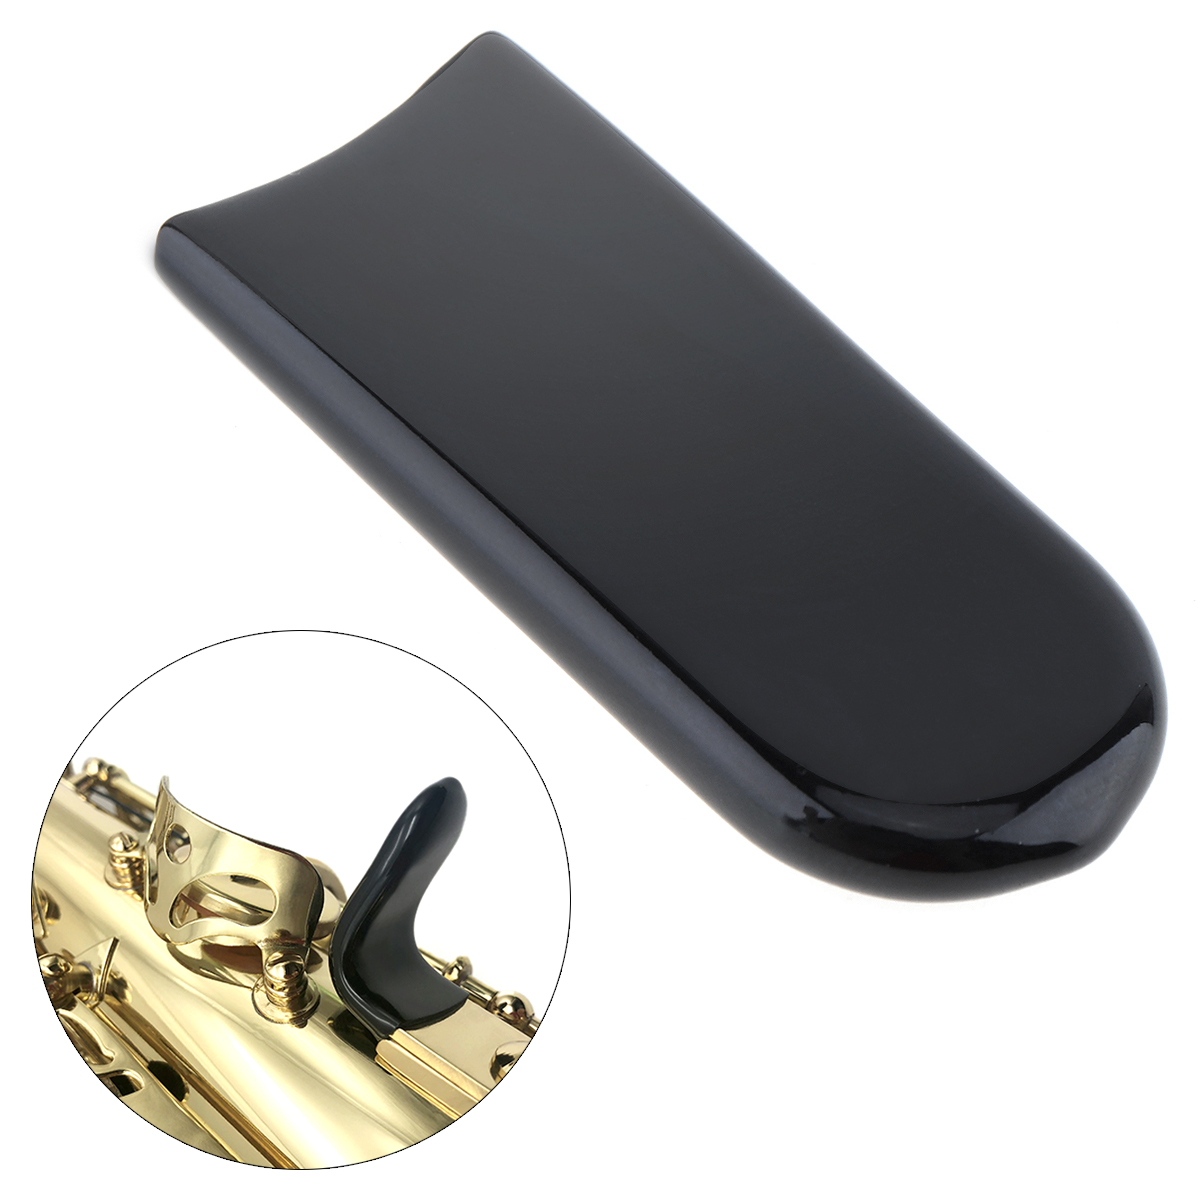 High Quality Rubber Saxophone Black Thumb Rest Saver Cushion Pad Finger Protector Comfortable For Alto Tenor Soprano Saxophones